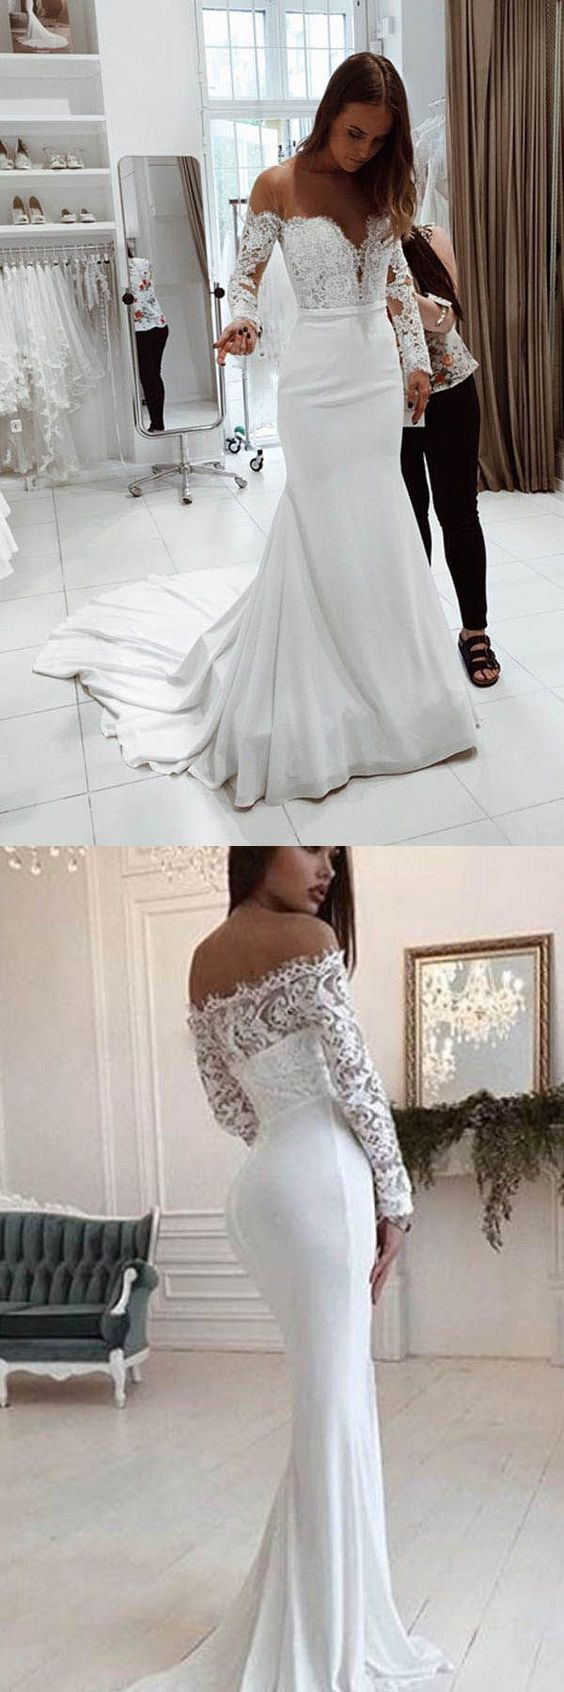 Long Sleeves Off the Shoulder Mermaid Bridal Long Wedding Dresses, F0516